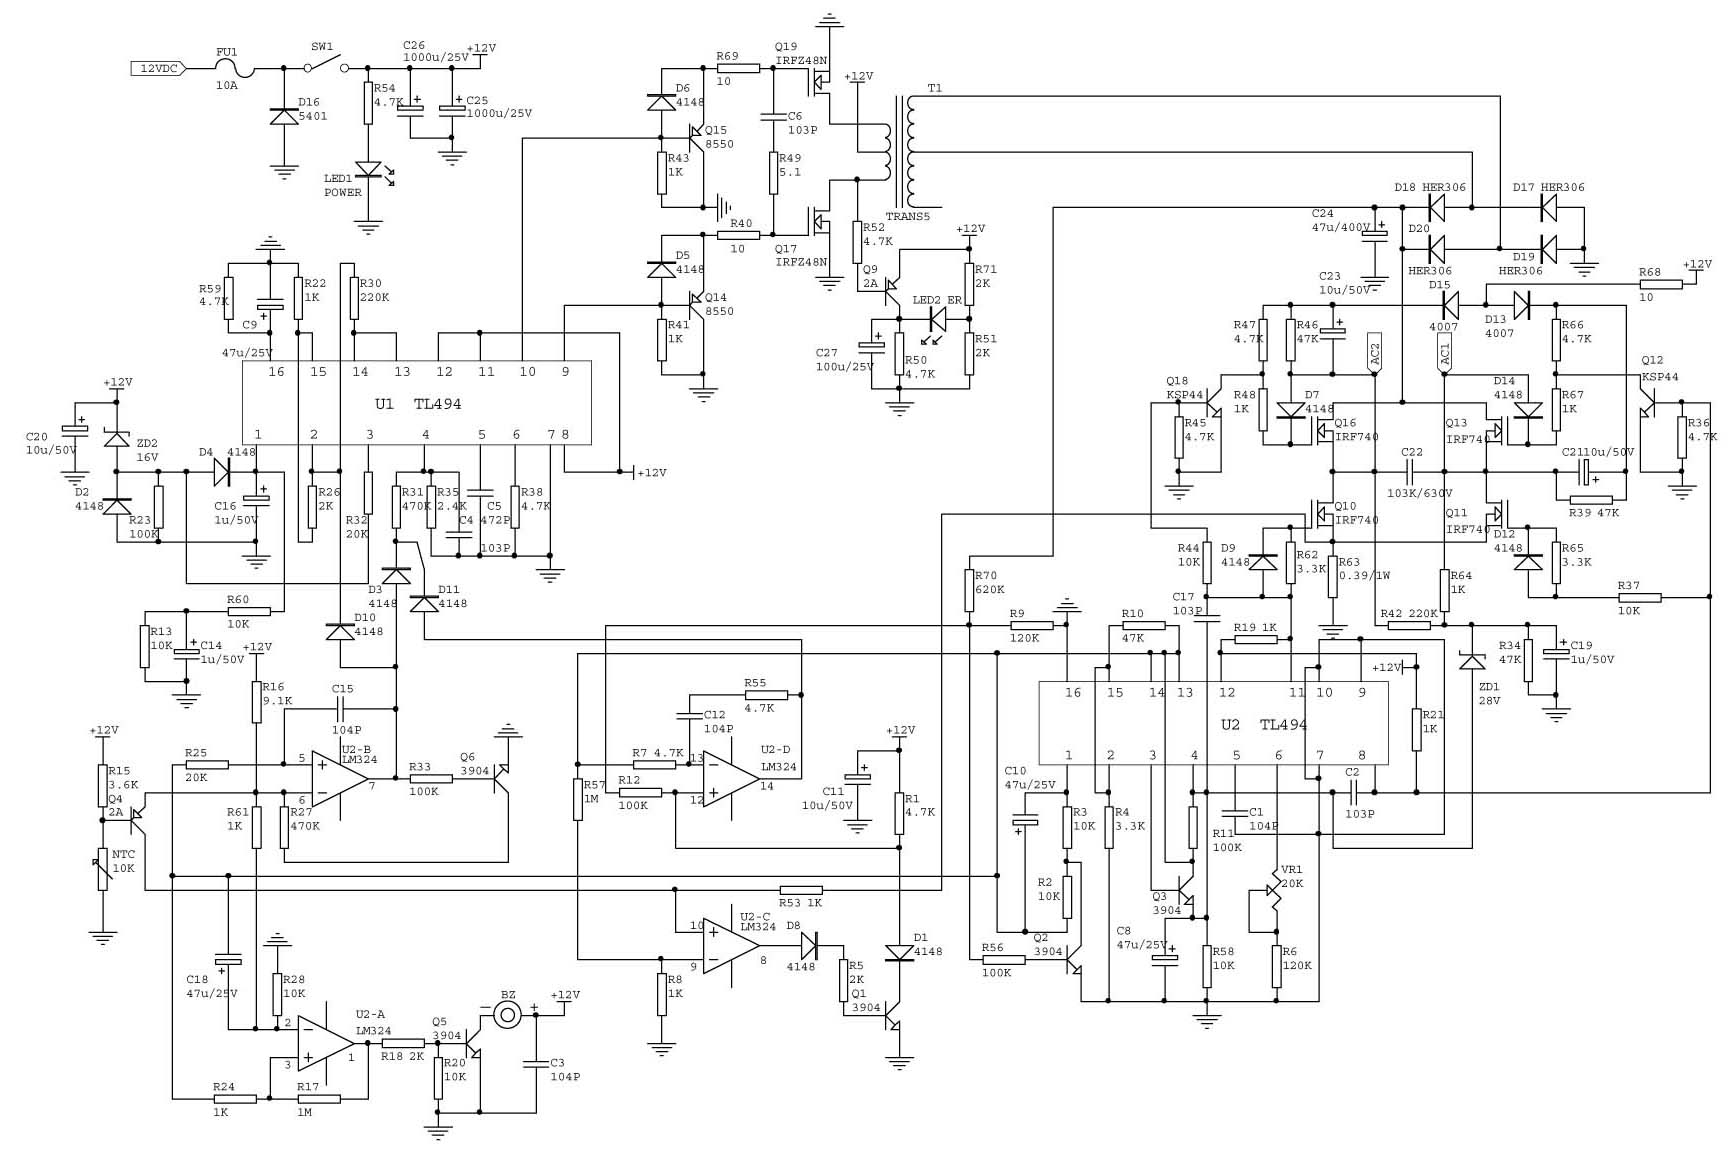 Common inverter principle diagram on the market(12VDC to